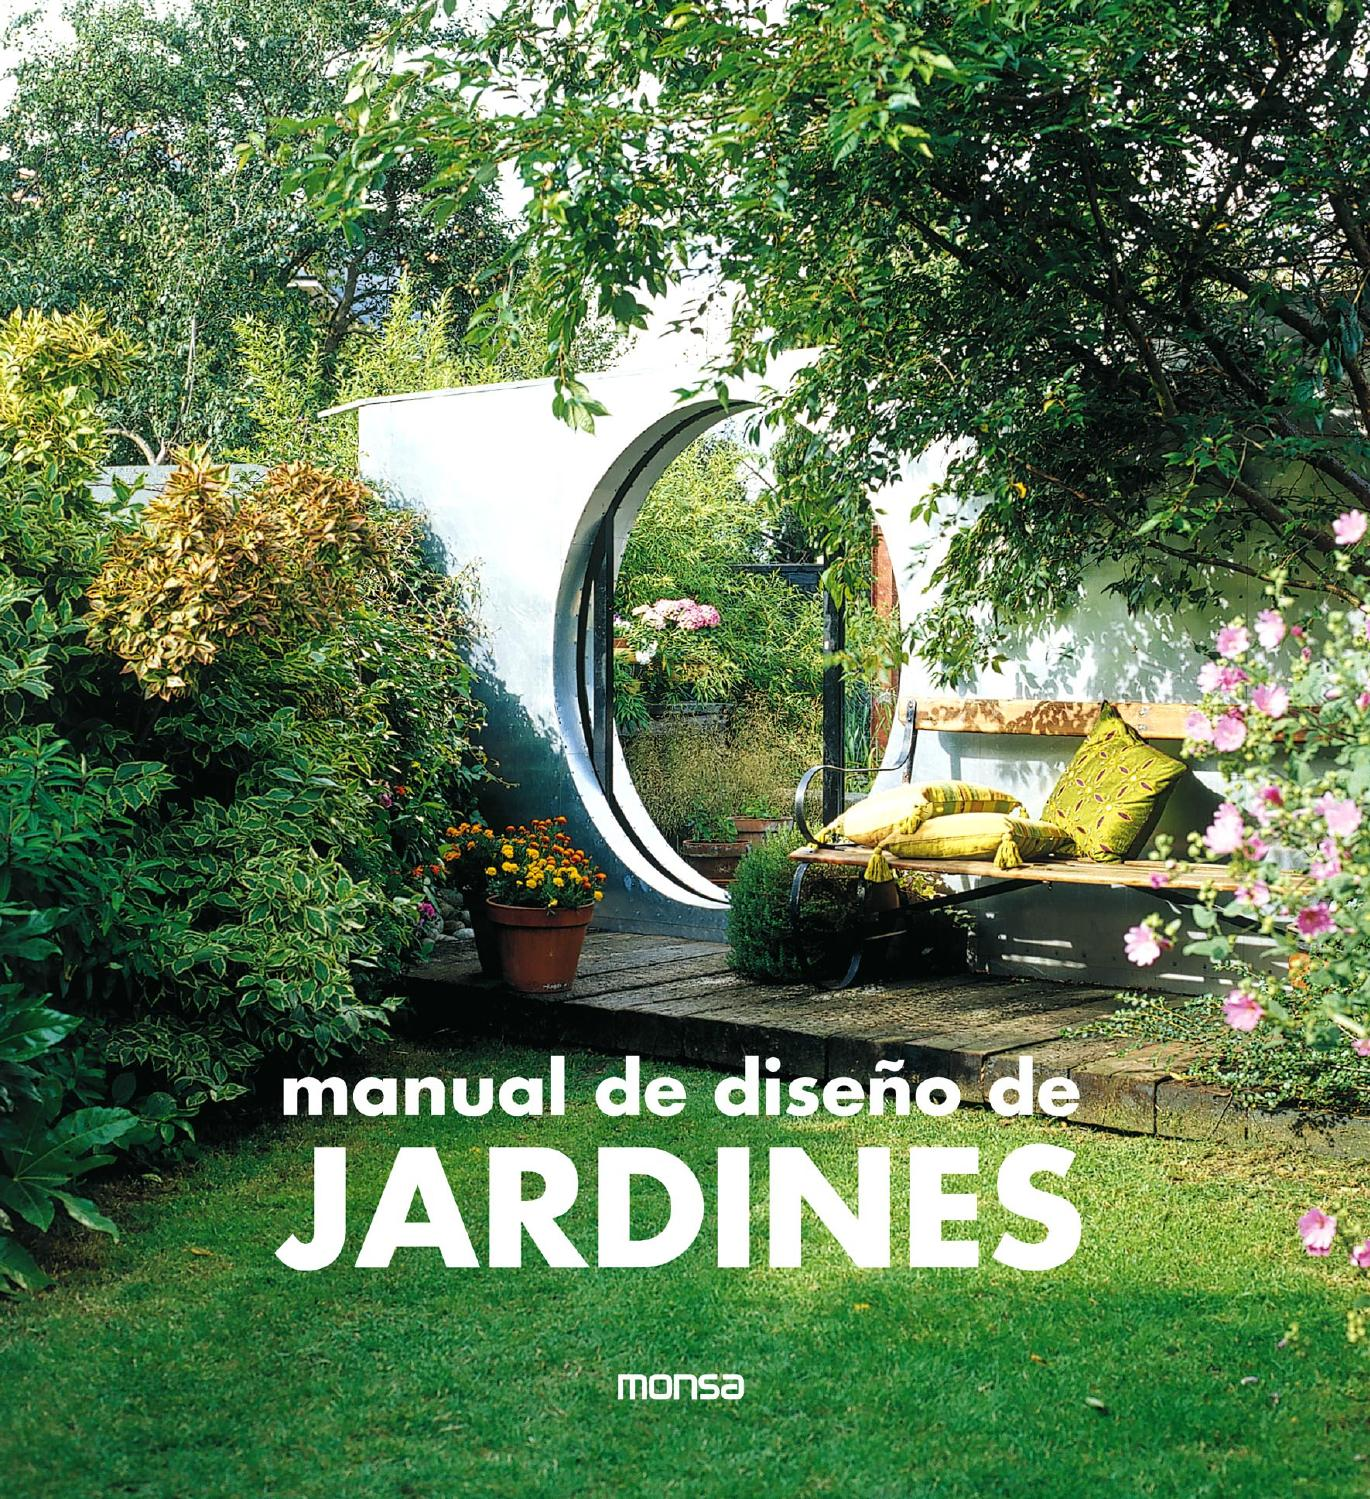 Manual de dise o de jardines by monsa publications issuu for Diseno de jardin